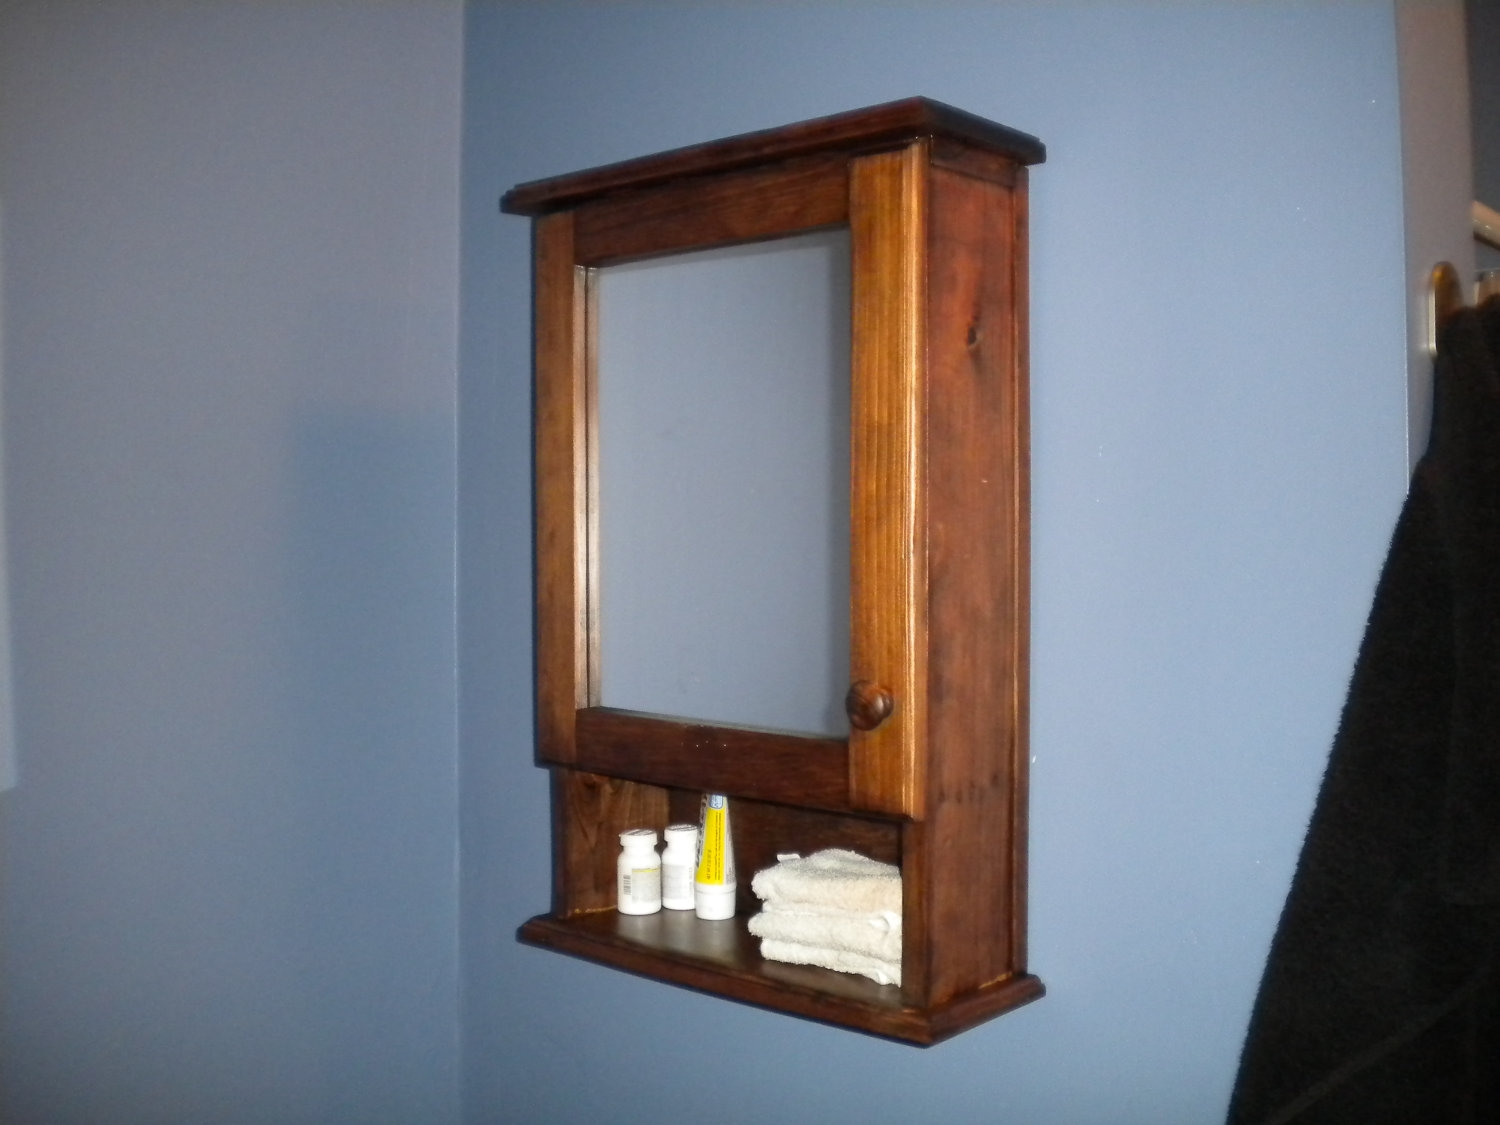 Wall Mounted Medicine Cabinet No Mirror